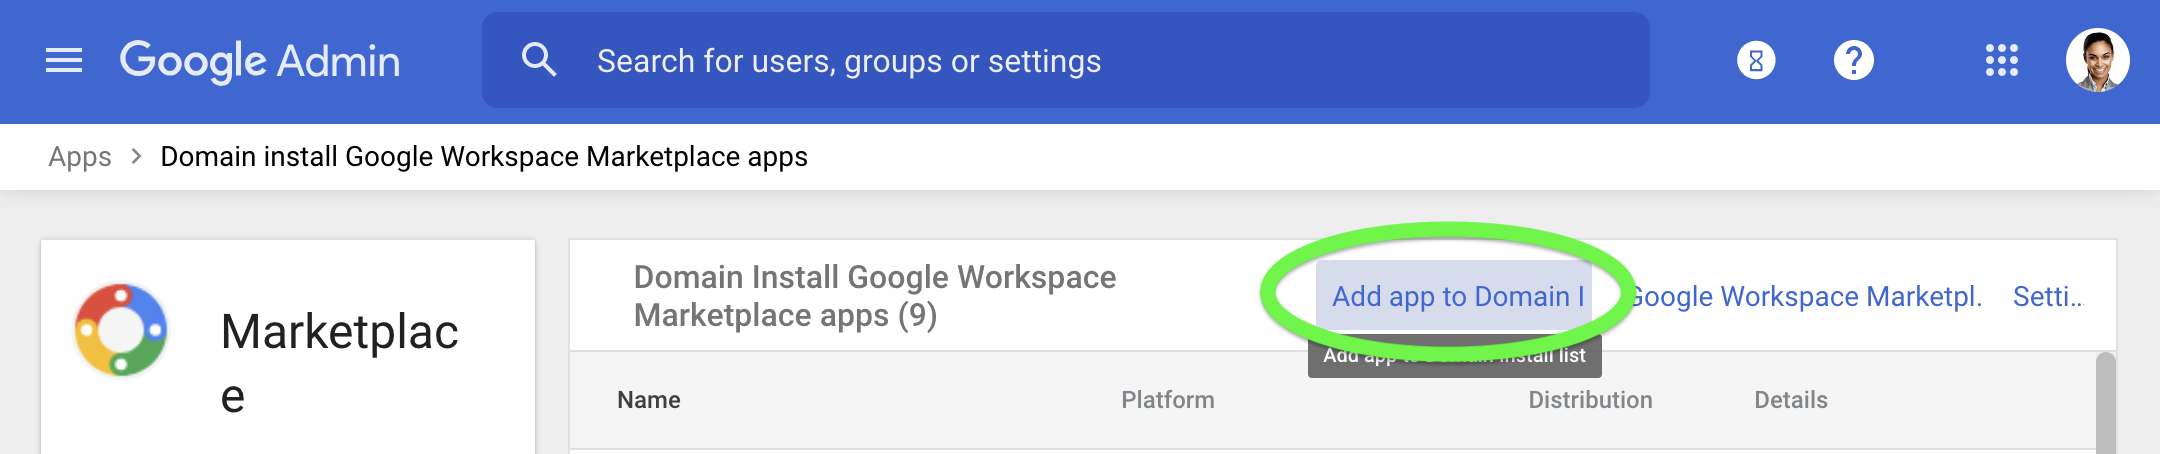 Click Add app to Domain to install GQueues for your Google Workspace domain